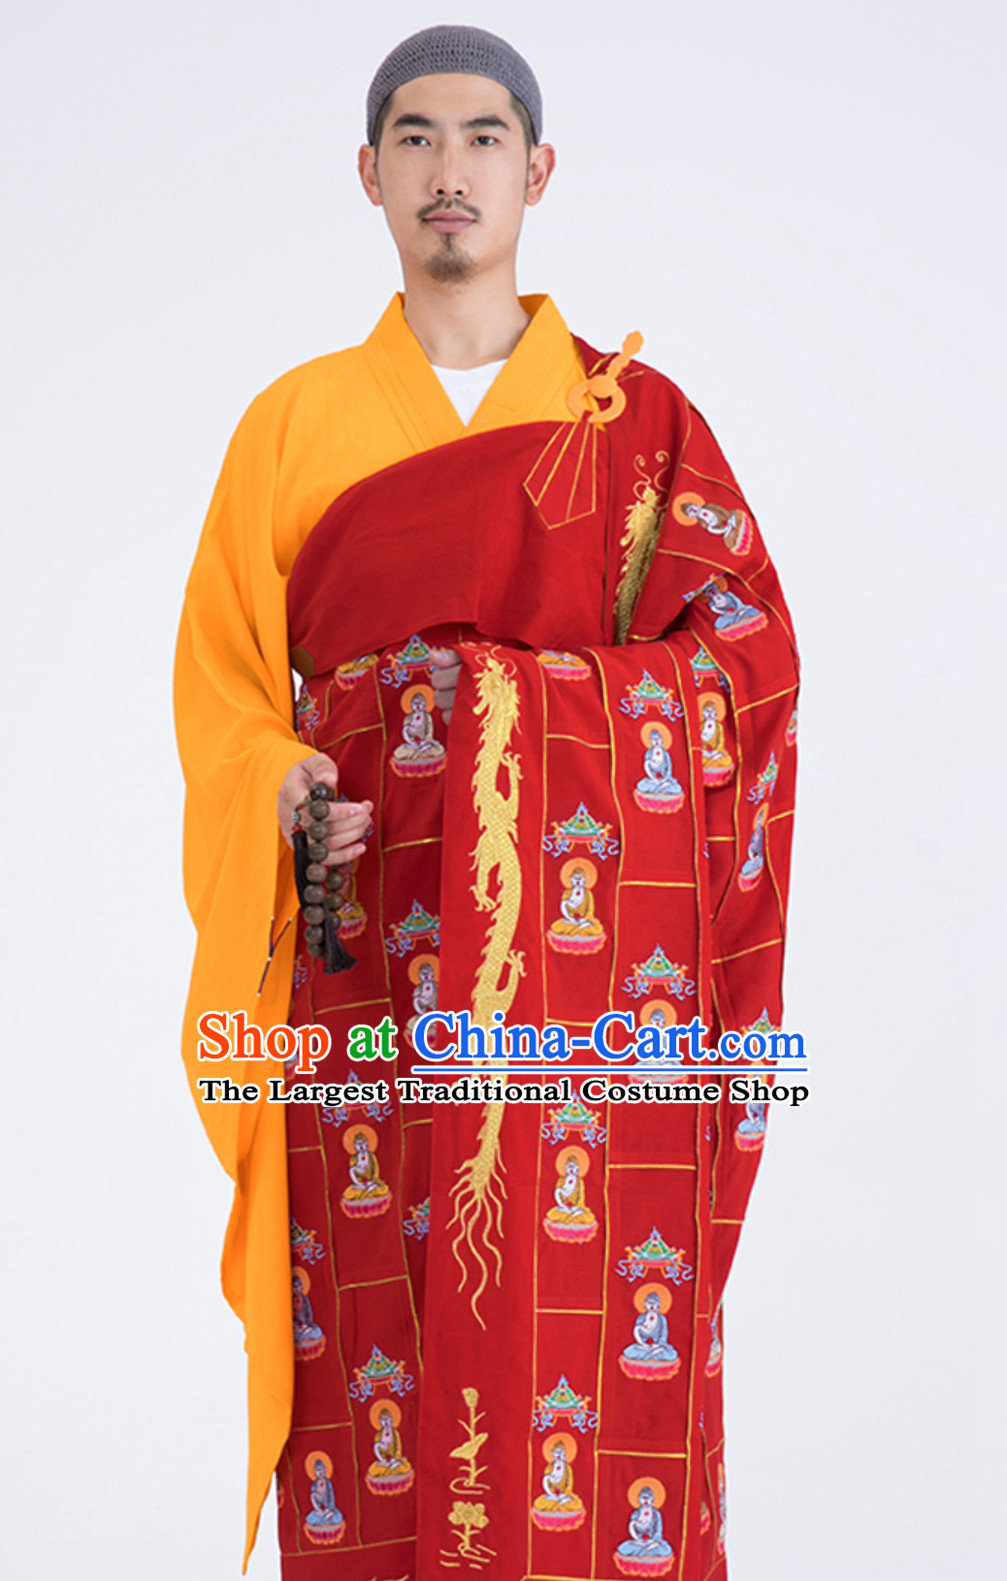 Chinese Traditional Kesa Kasaya Buddhist Monk Clothing Complete Set